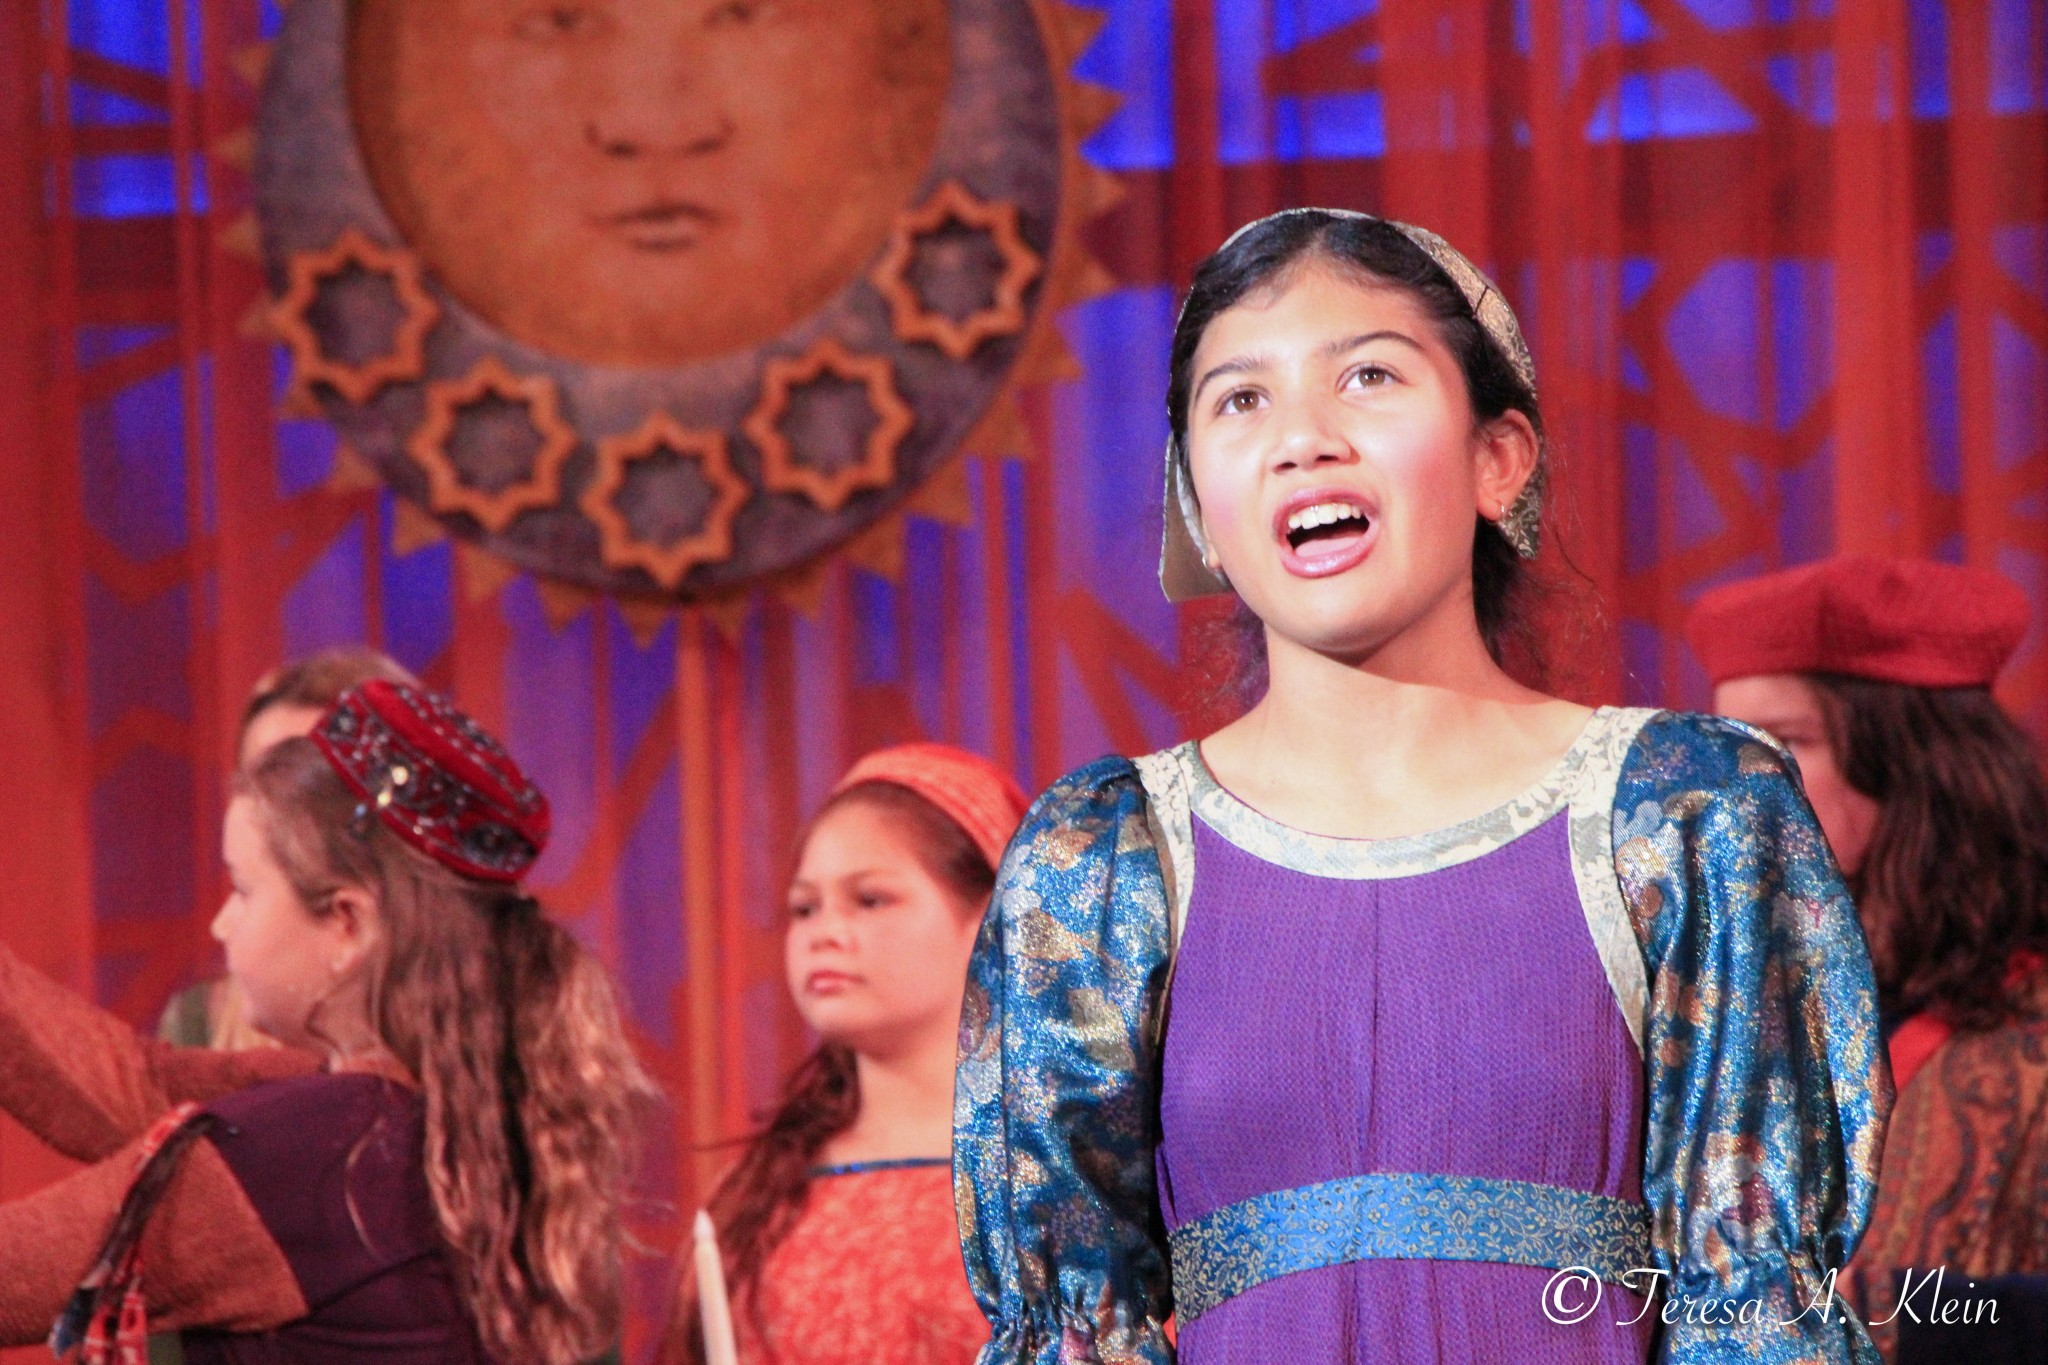 California Revels 2018 - Young Singer